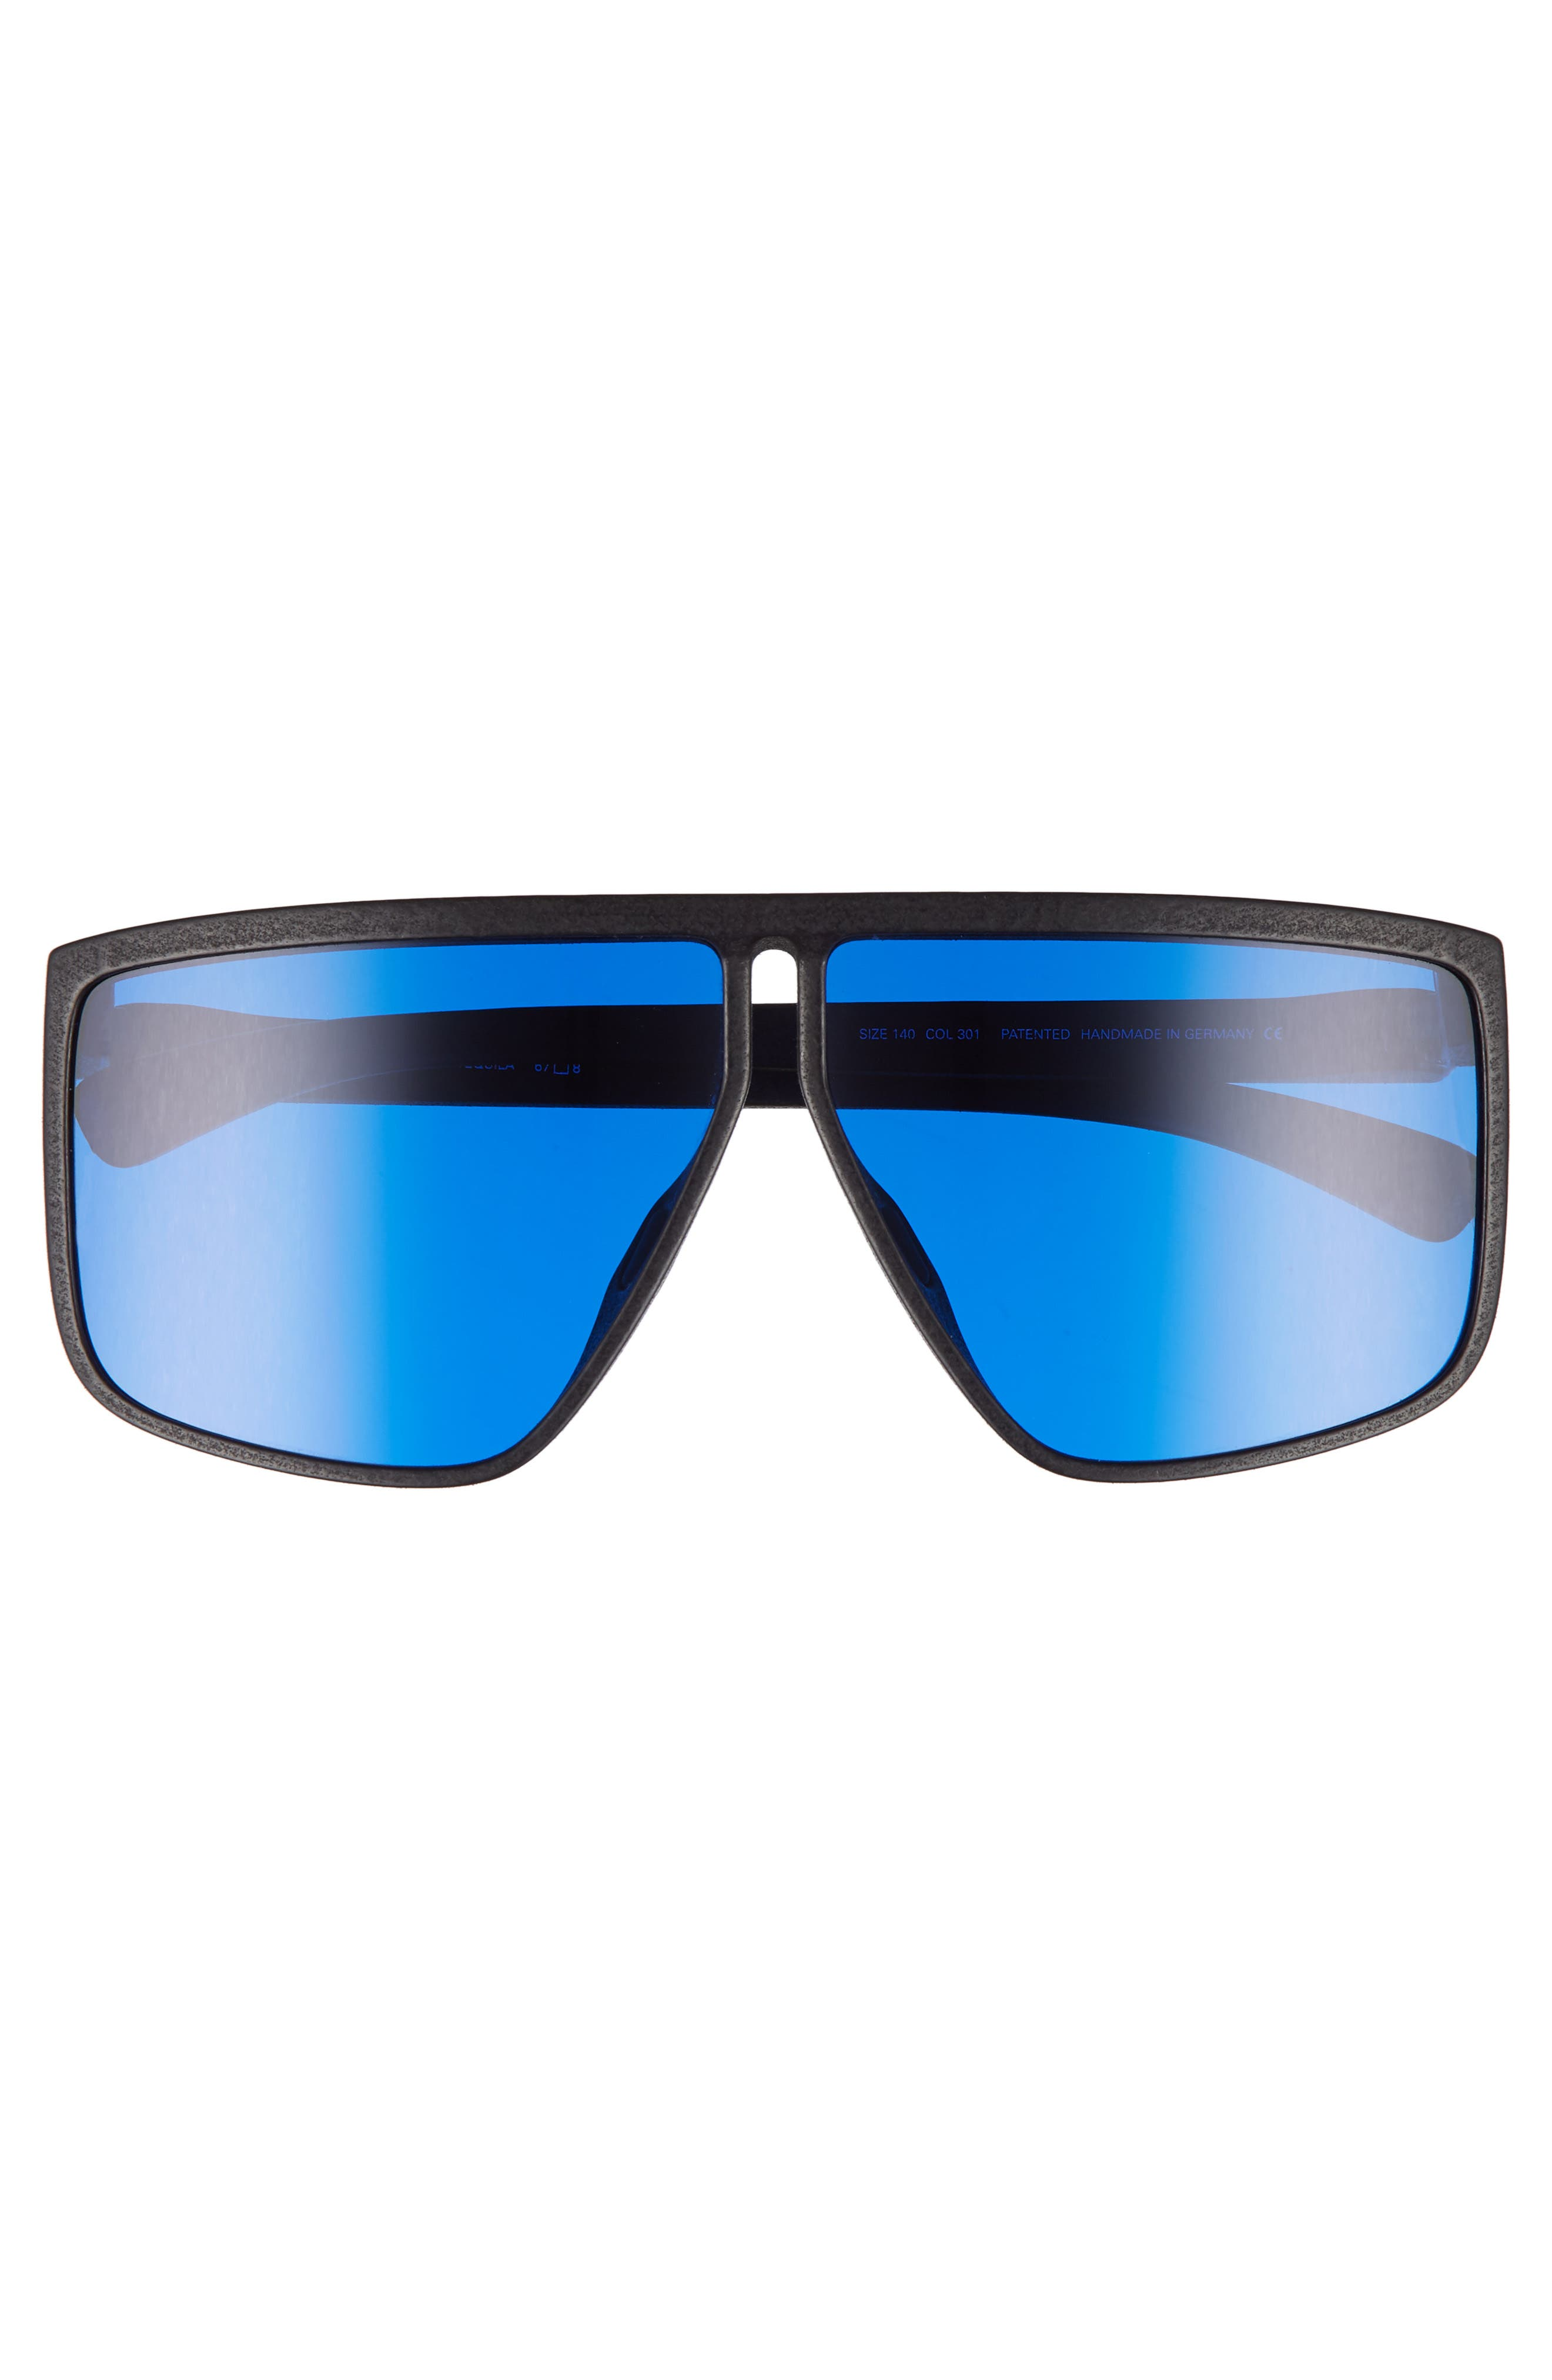 Tequila 67mm Sunglasses,                             Alternate thumbnail 2, color,                             Pitch Black/ Navy Shield